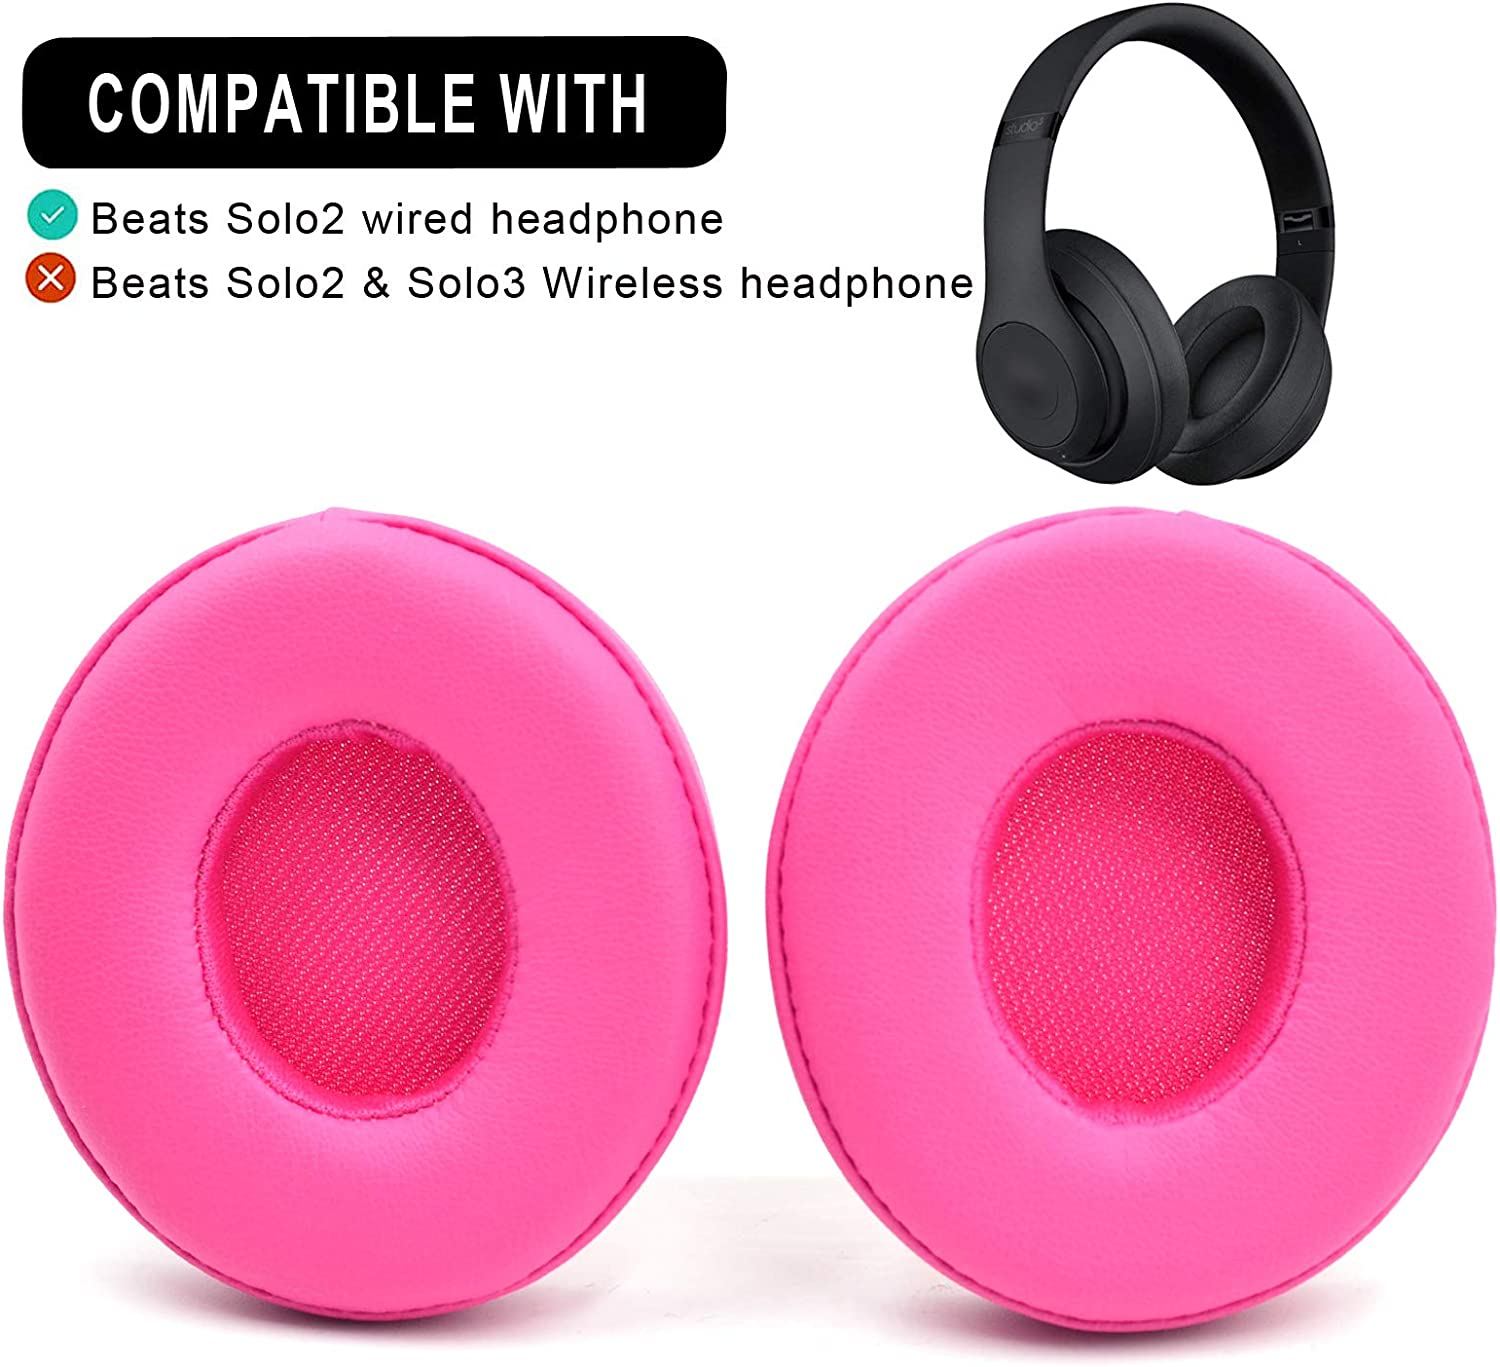 Amazon Com Defean Solo 2 Earpad Replacement Easy To Install Cushions For Beats Solo 2 Wired Over Ear Beats Headphone Pink Home Audio Theater